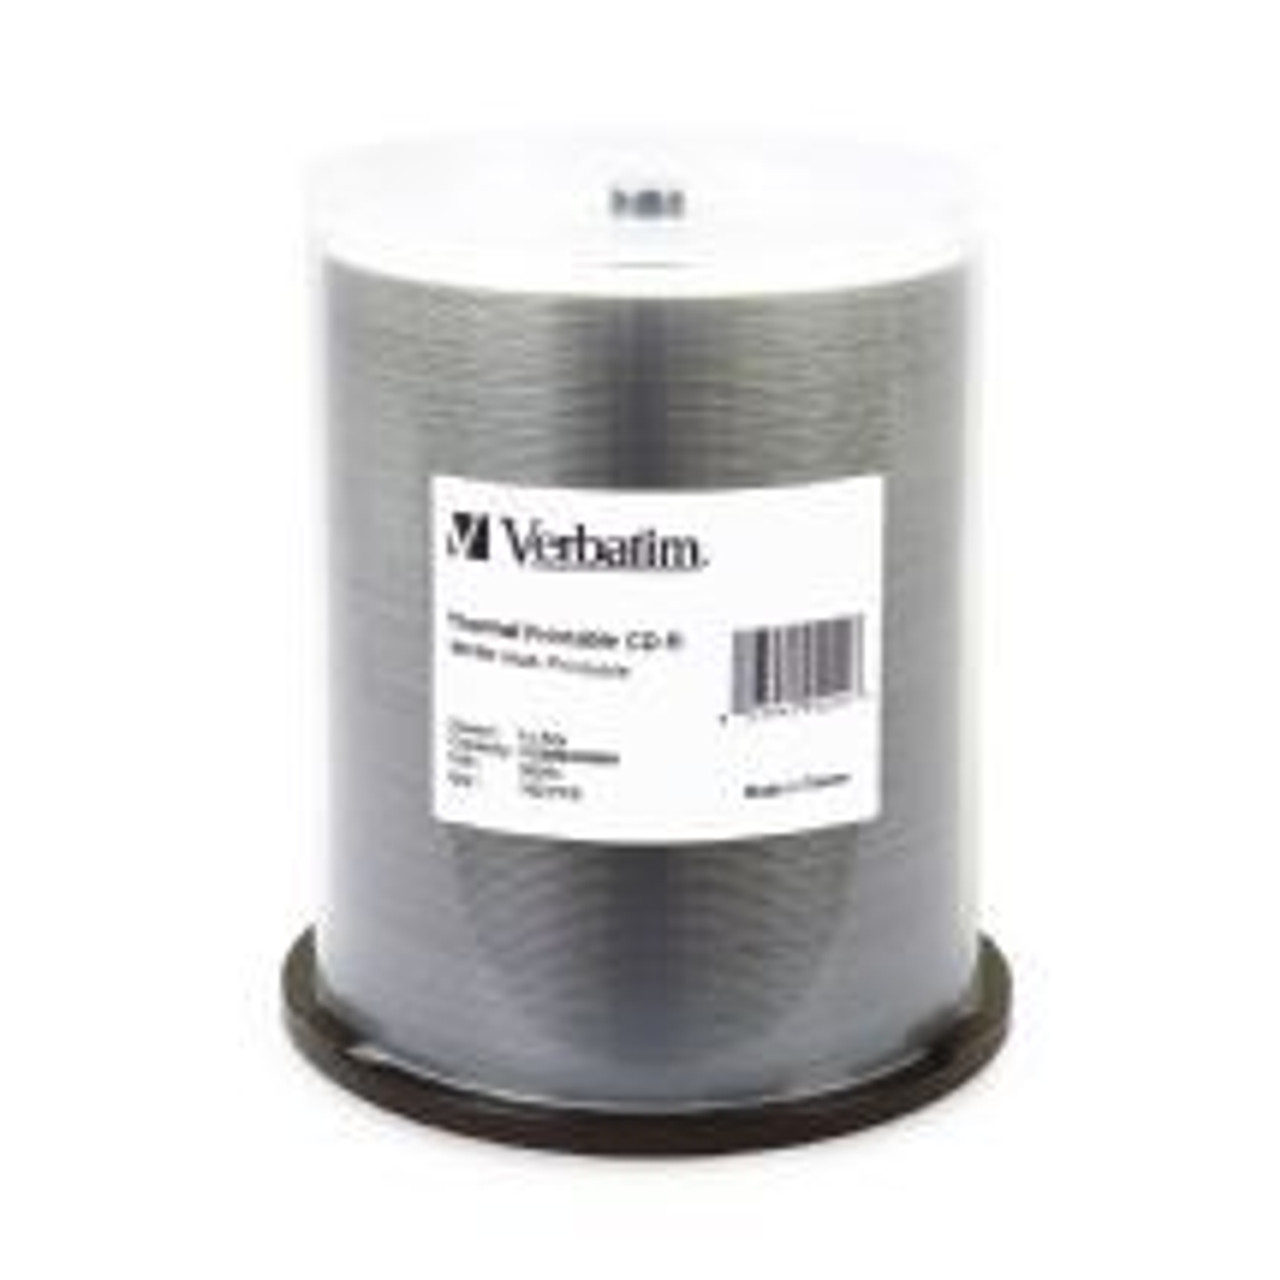 Image for Verbatim CD-R 80 Min 700MB White Wide Thermal Printable CX Computer Superstore